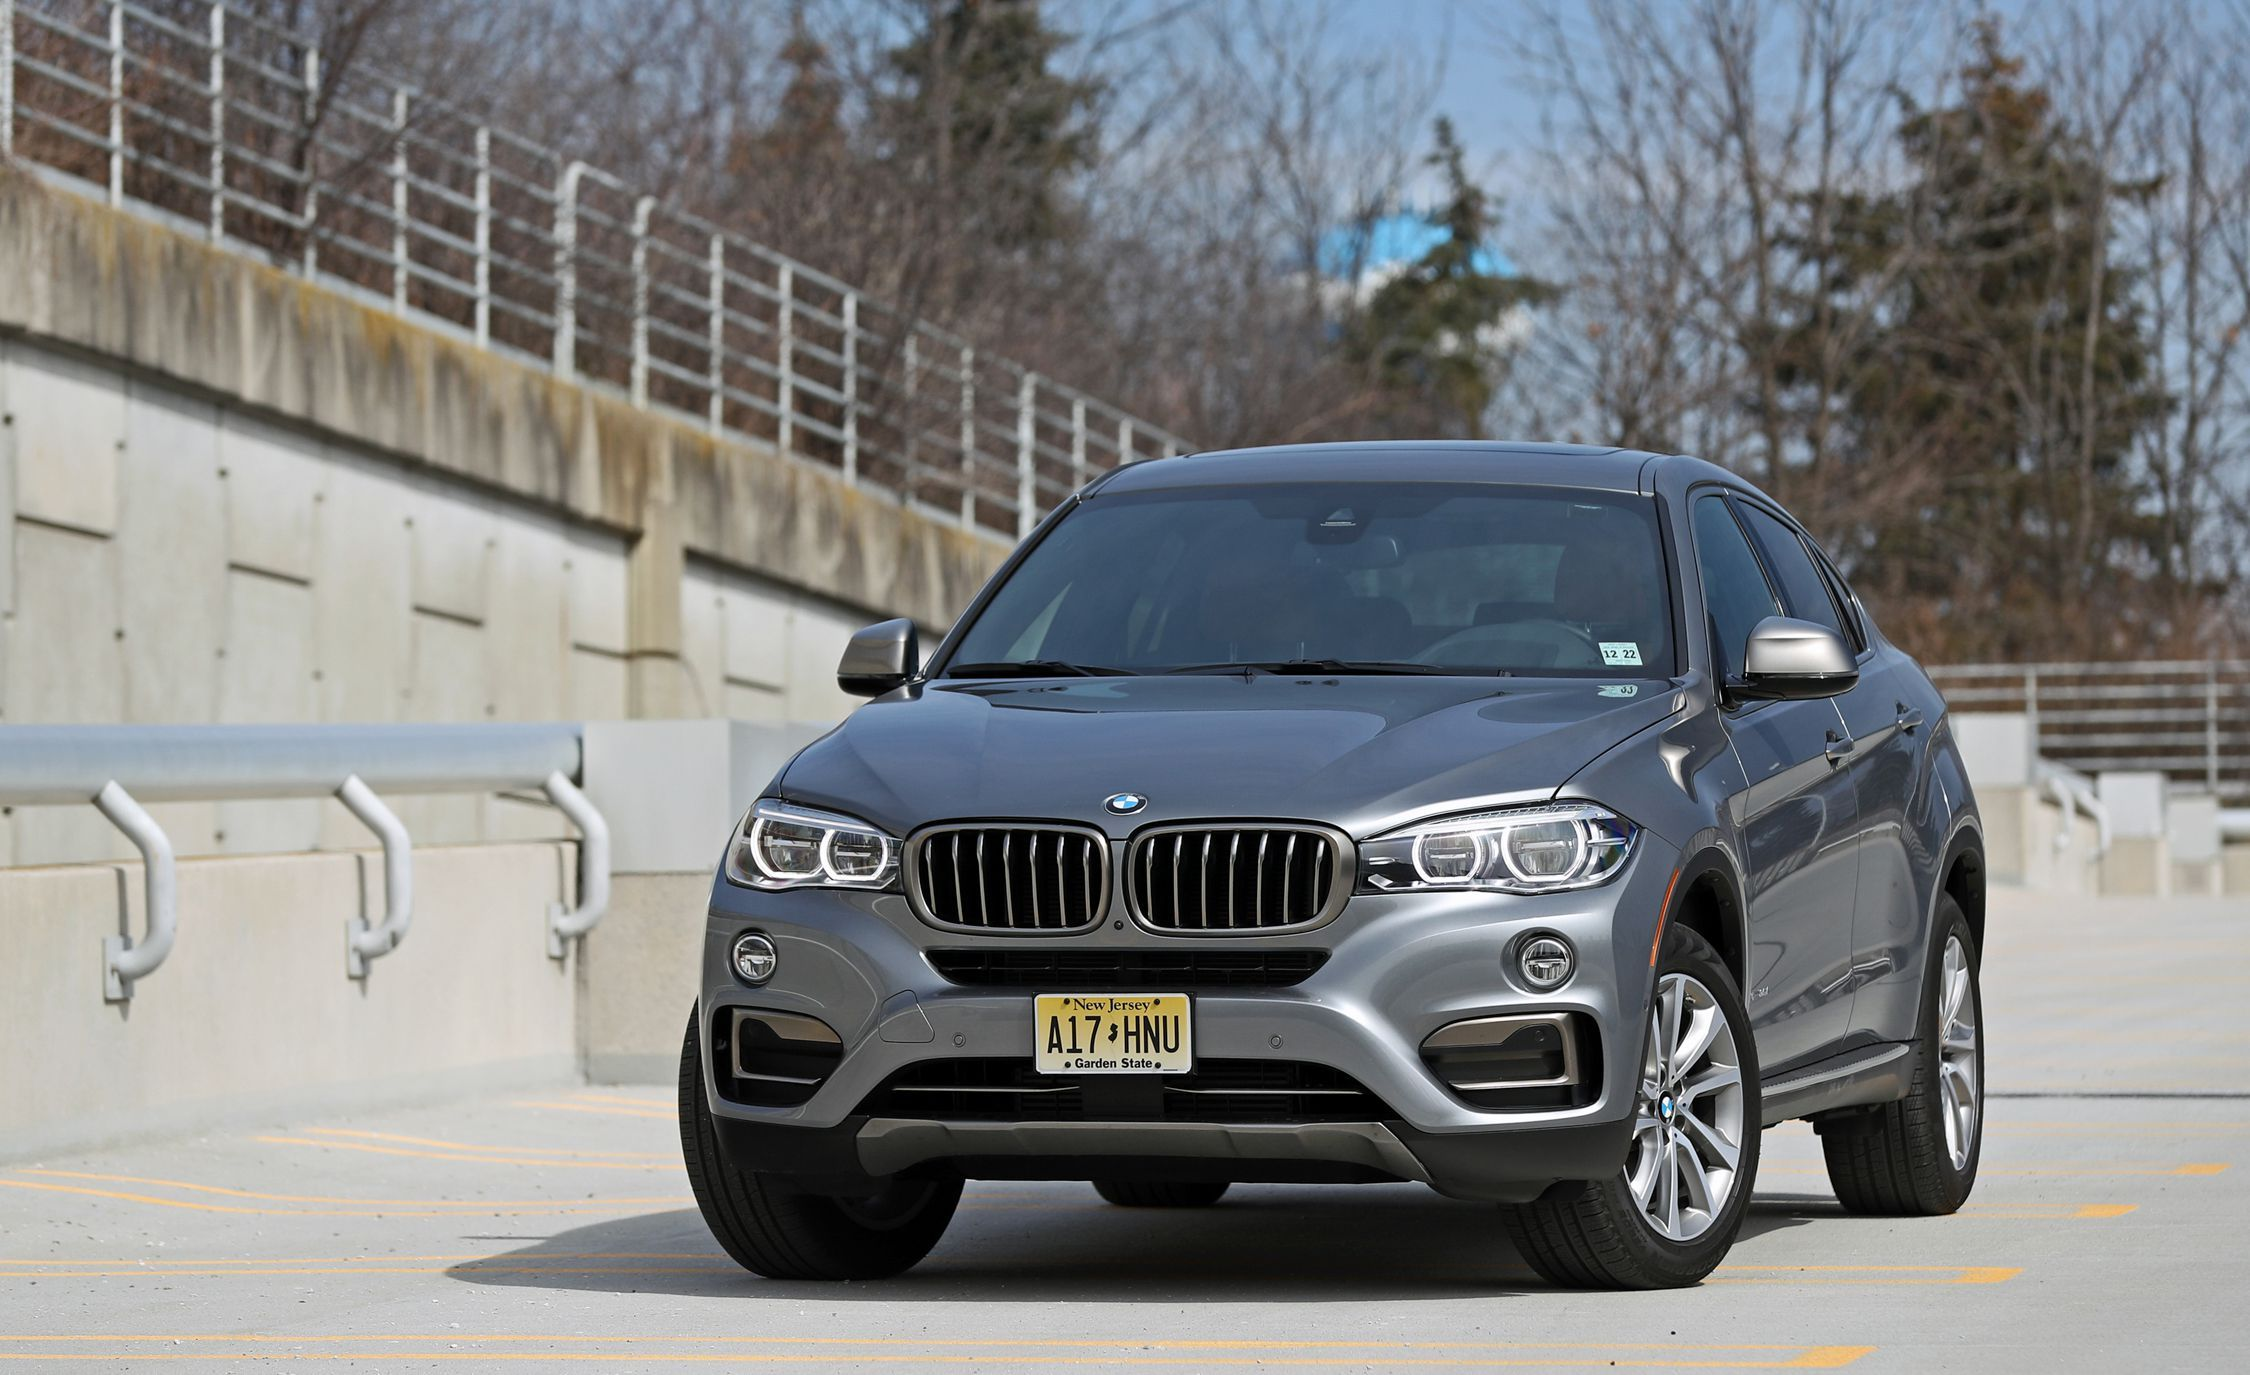 2019 Bmw X6 Reviews Bmw X6 Price Photos And Specs Car And Driver